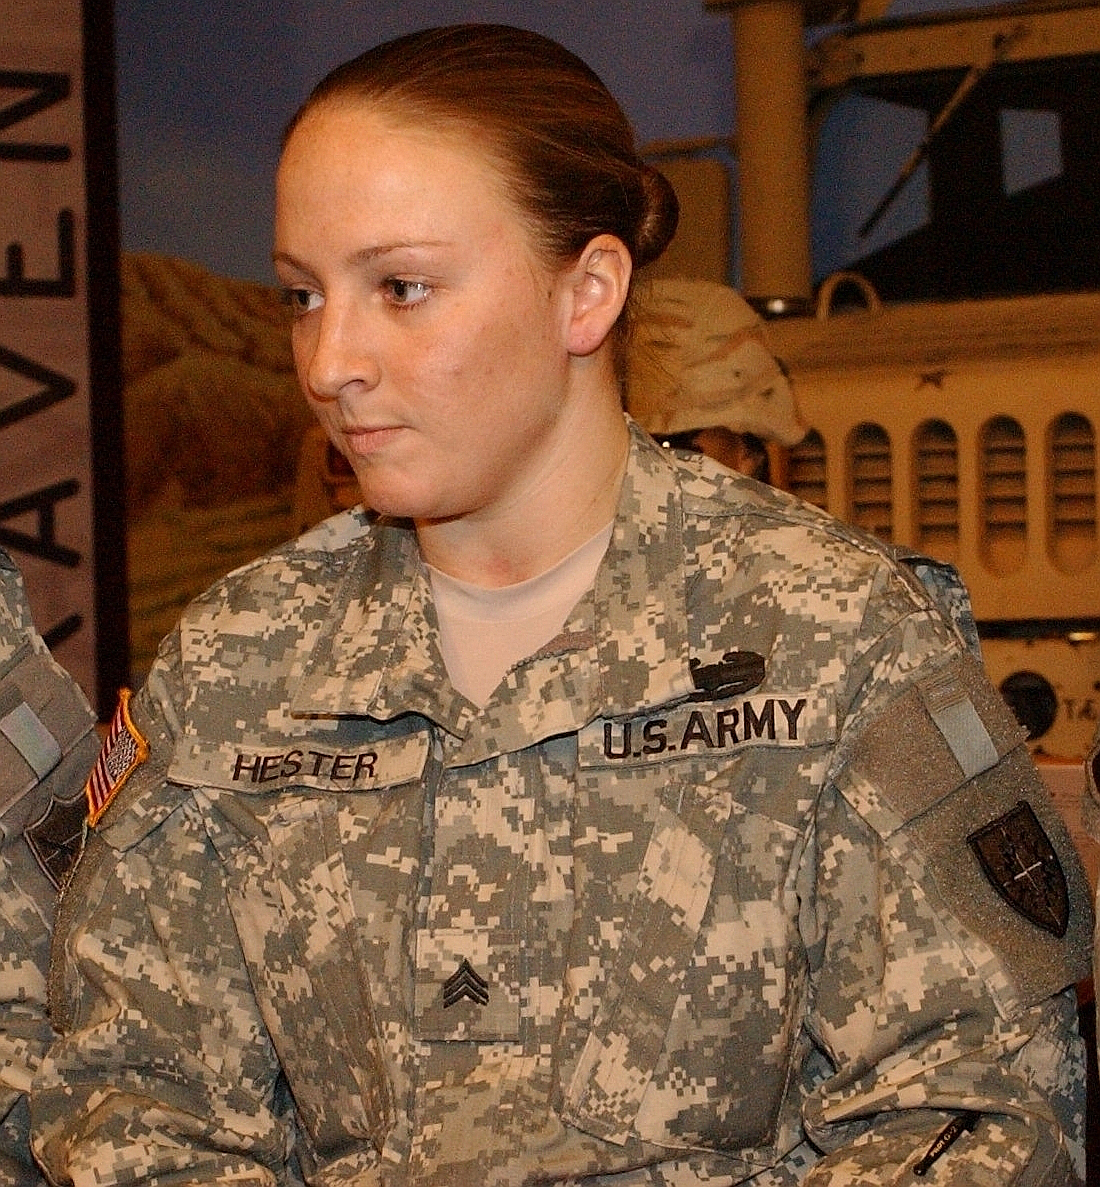 Female military pictures